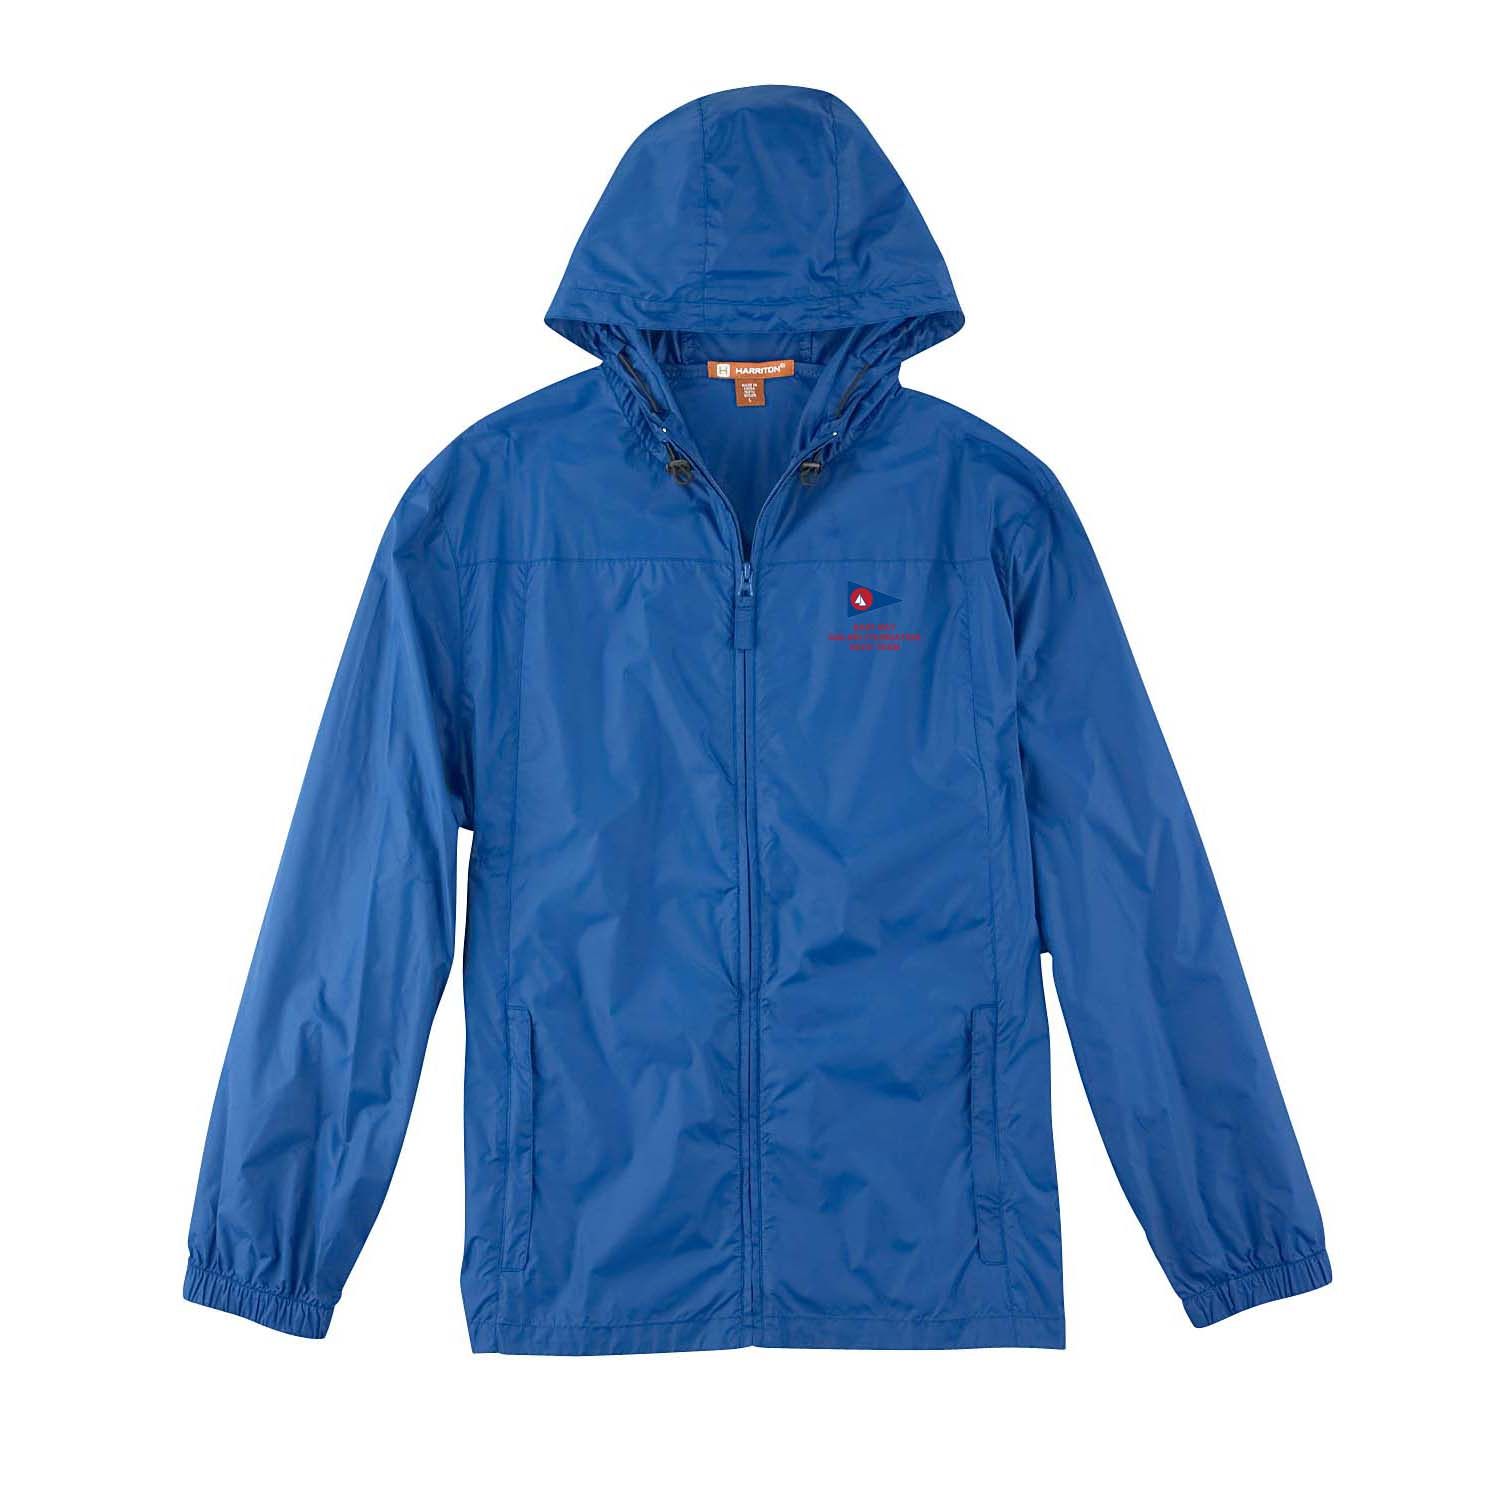 EBSF - Kid's RACE TEAM RAIN JACKET